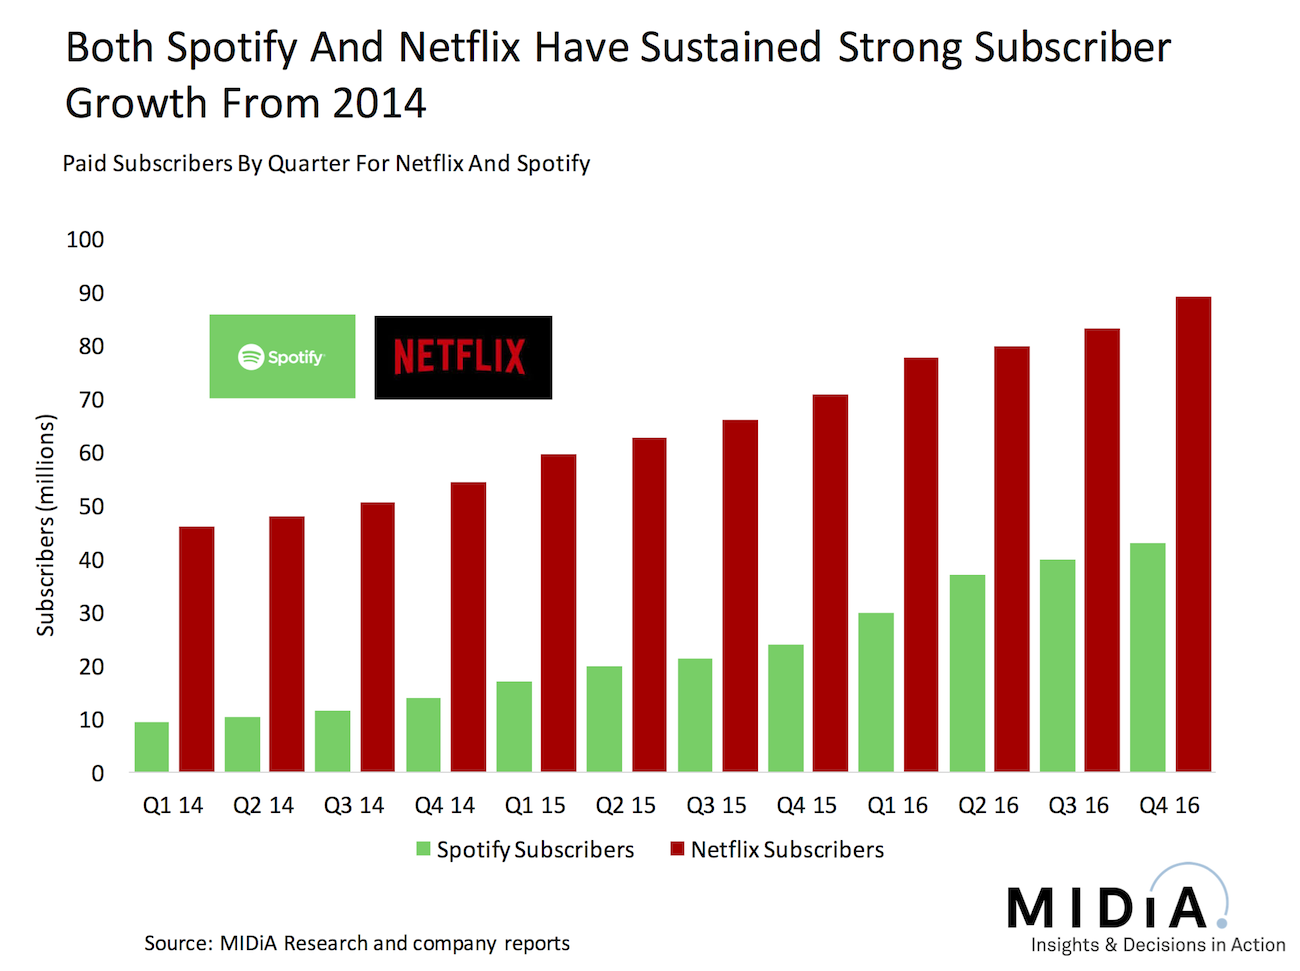 Cover image for Why Netflix Can Turn A Profit But Spotify Cannot (Yet)